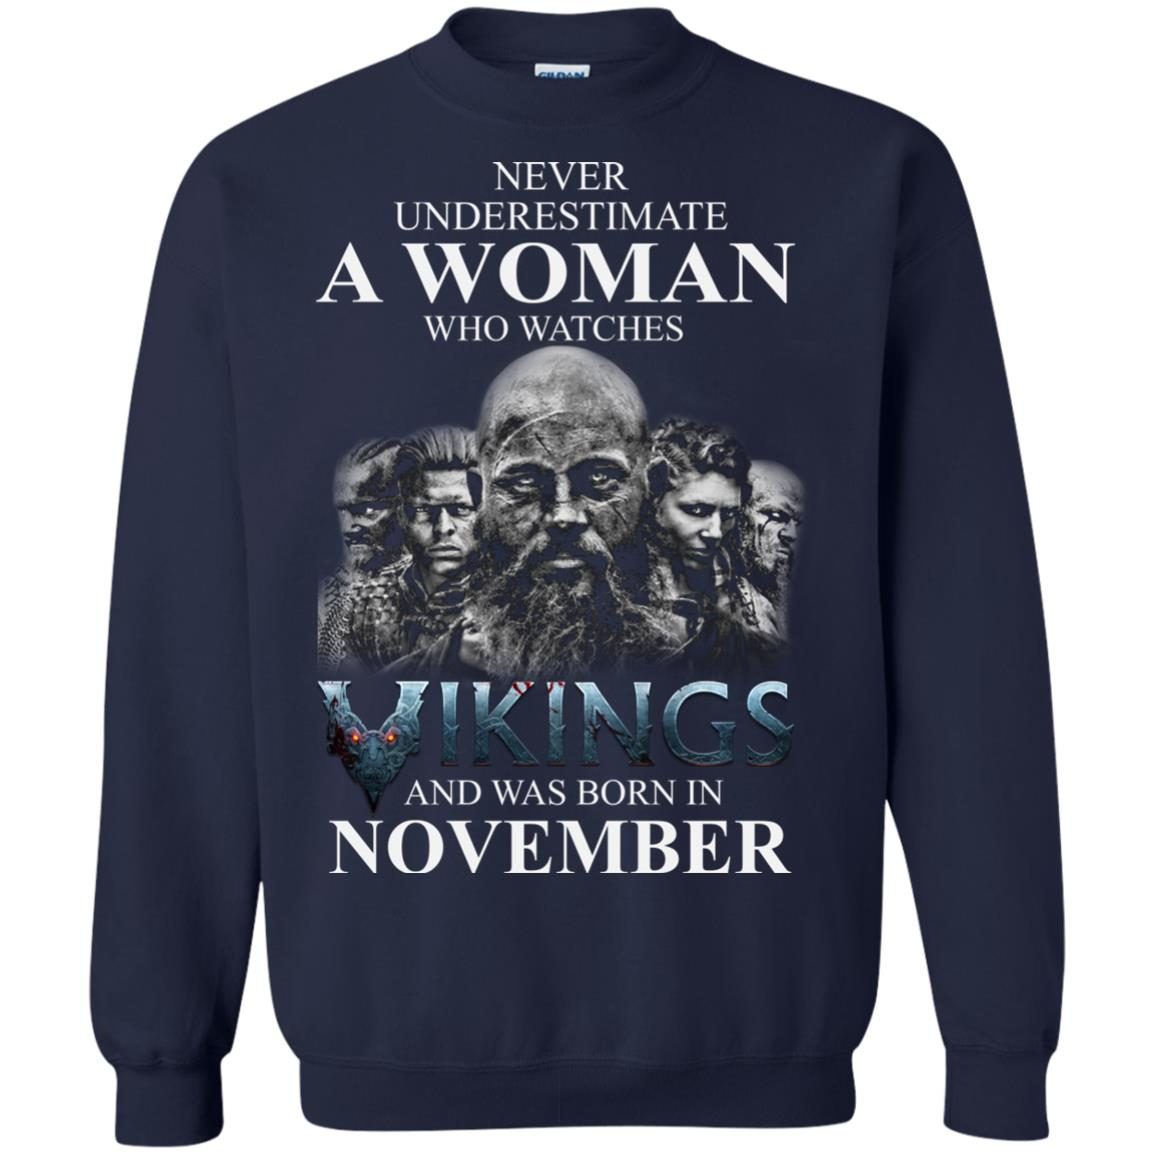 image 1238 - Never Underestimate A woman who watches Vikings and was born in November shirt